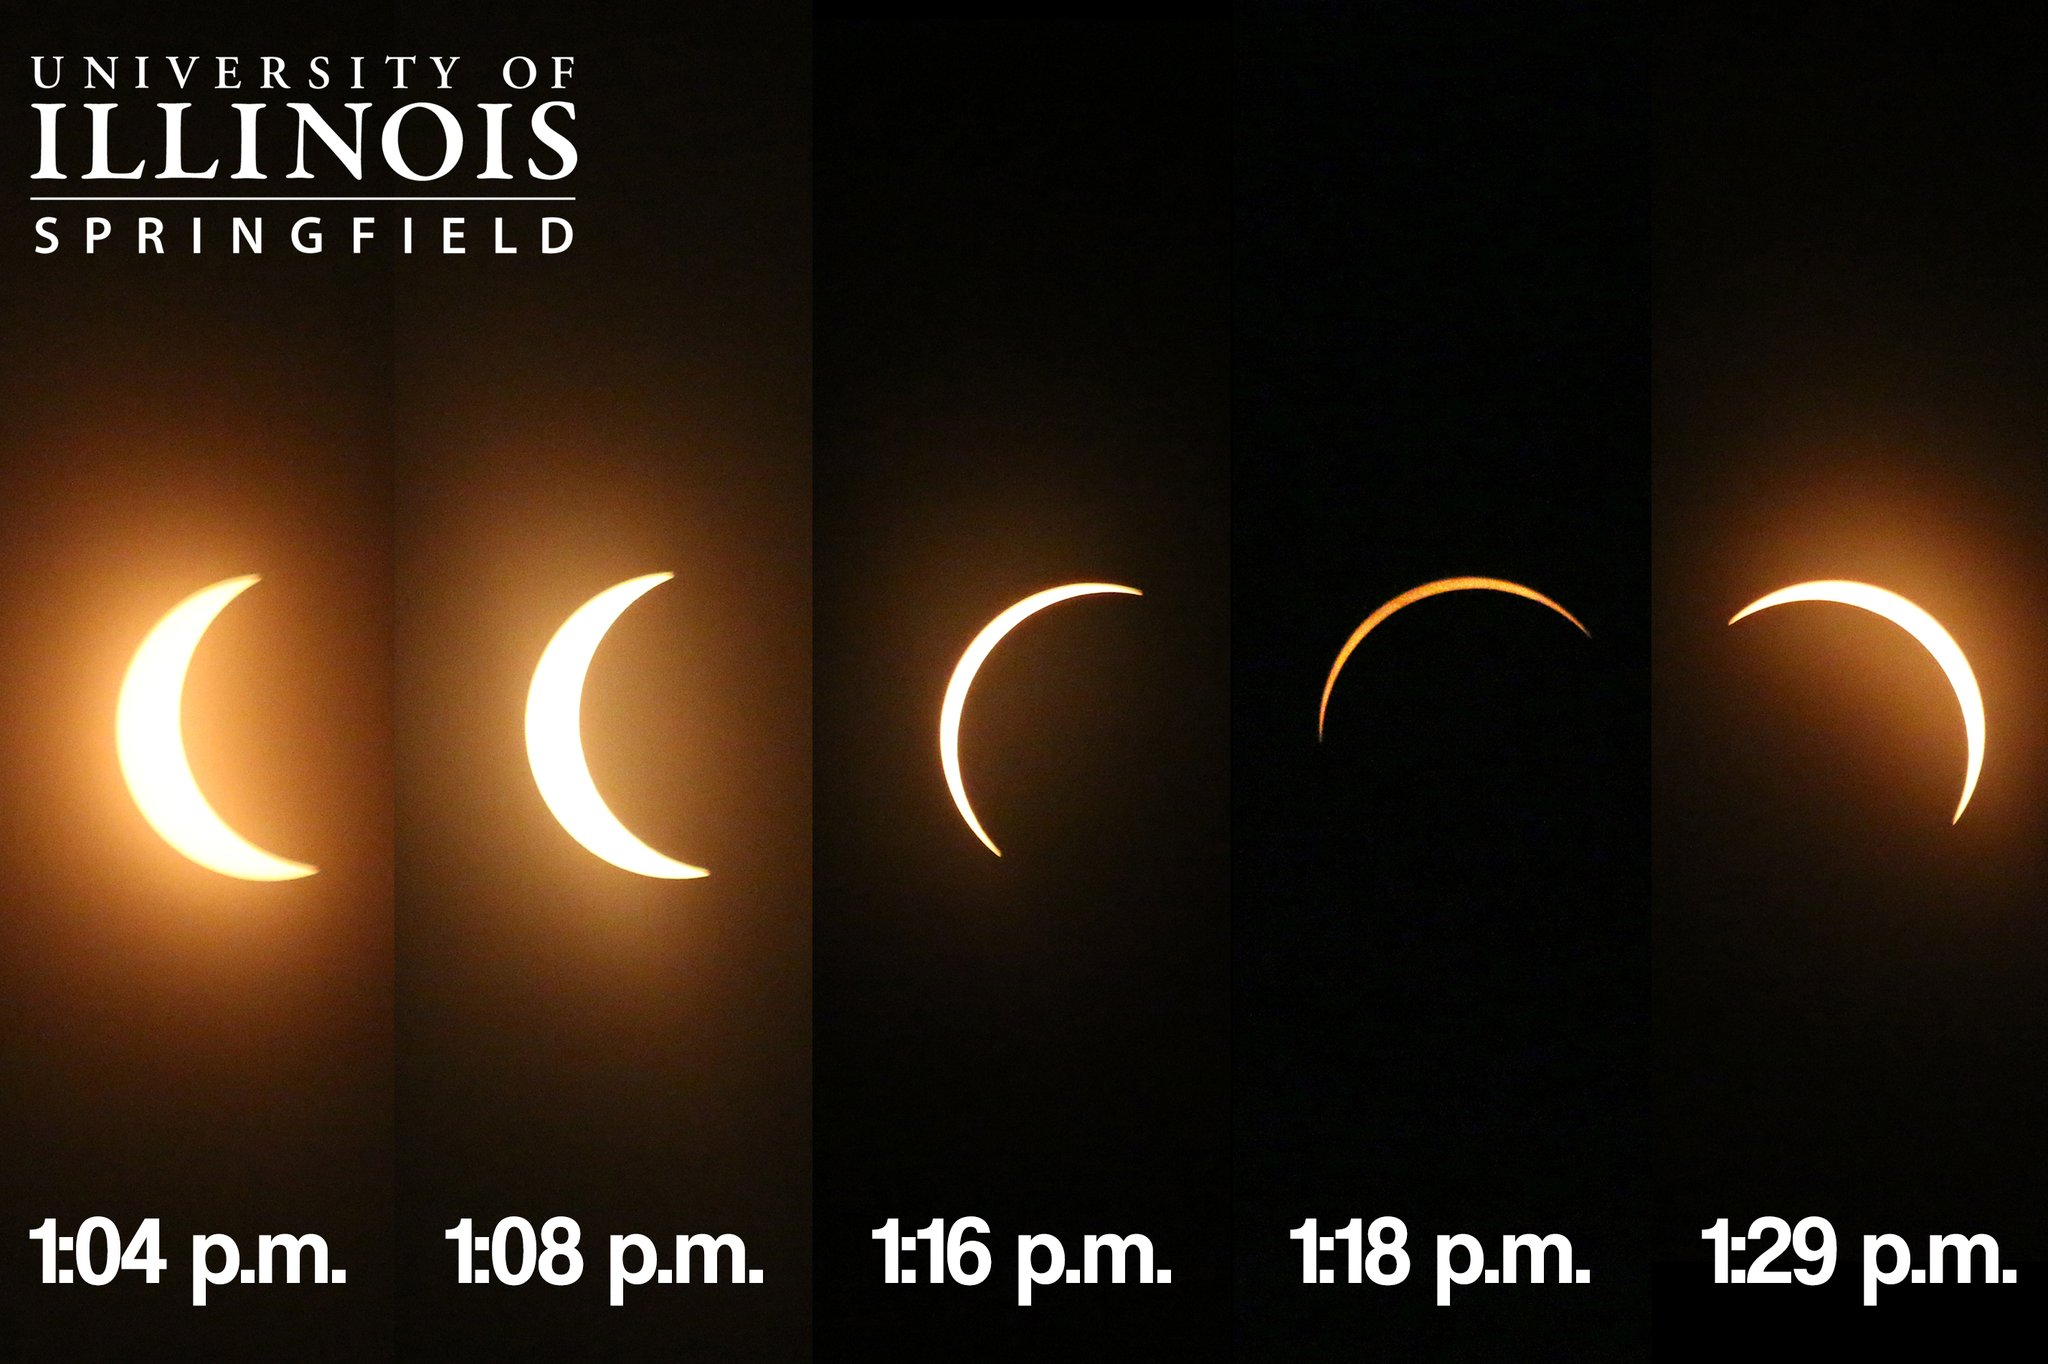 Time sequence of the solar eclipse in Springfield, by the University of Illinois at Springfield